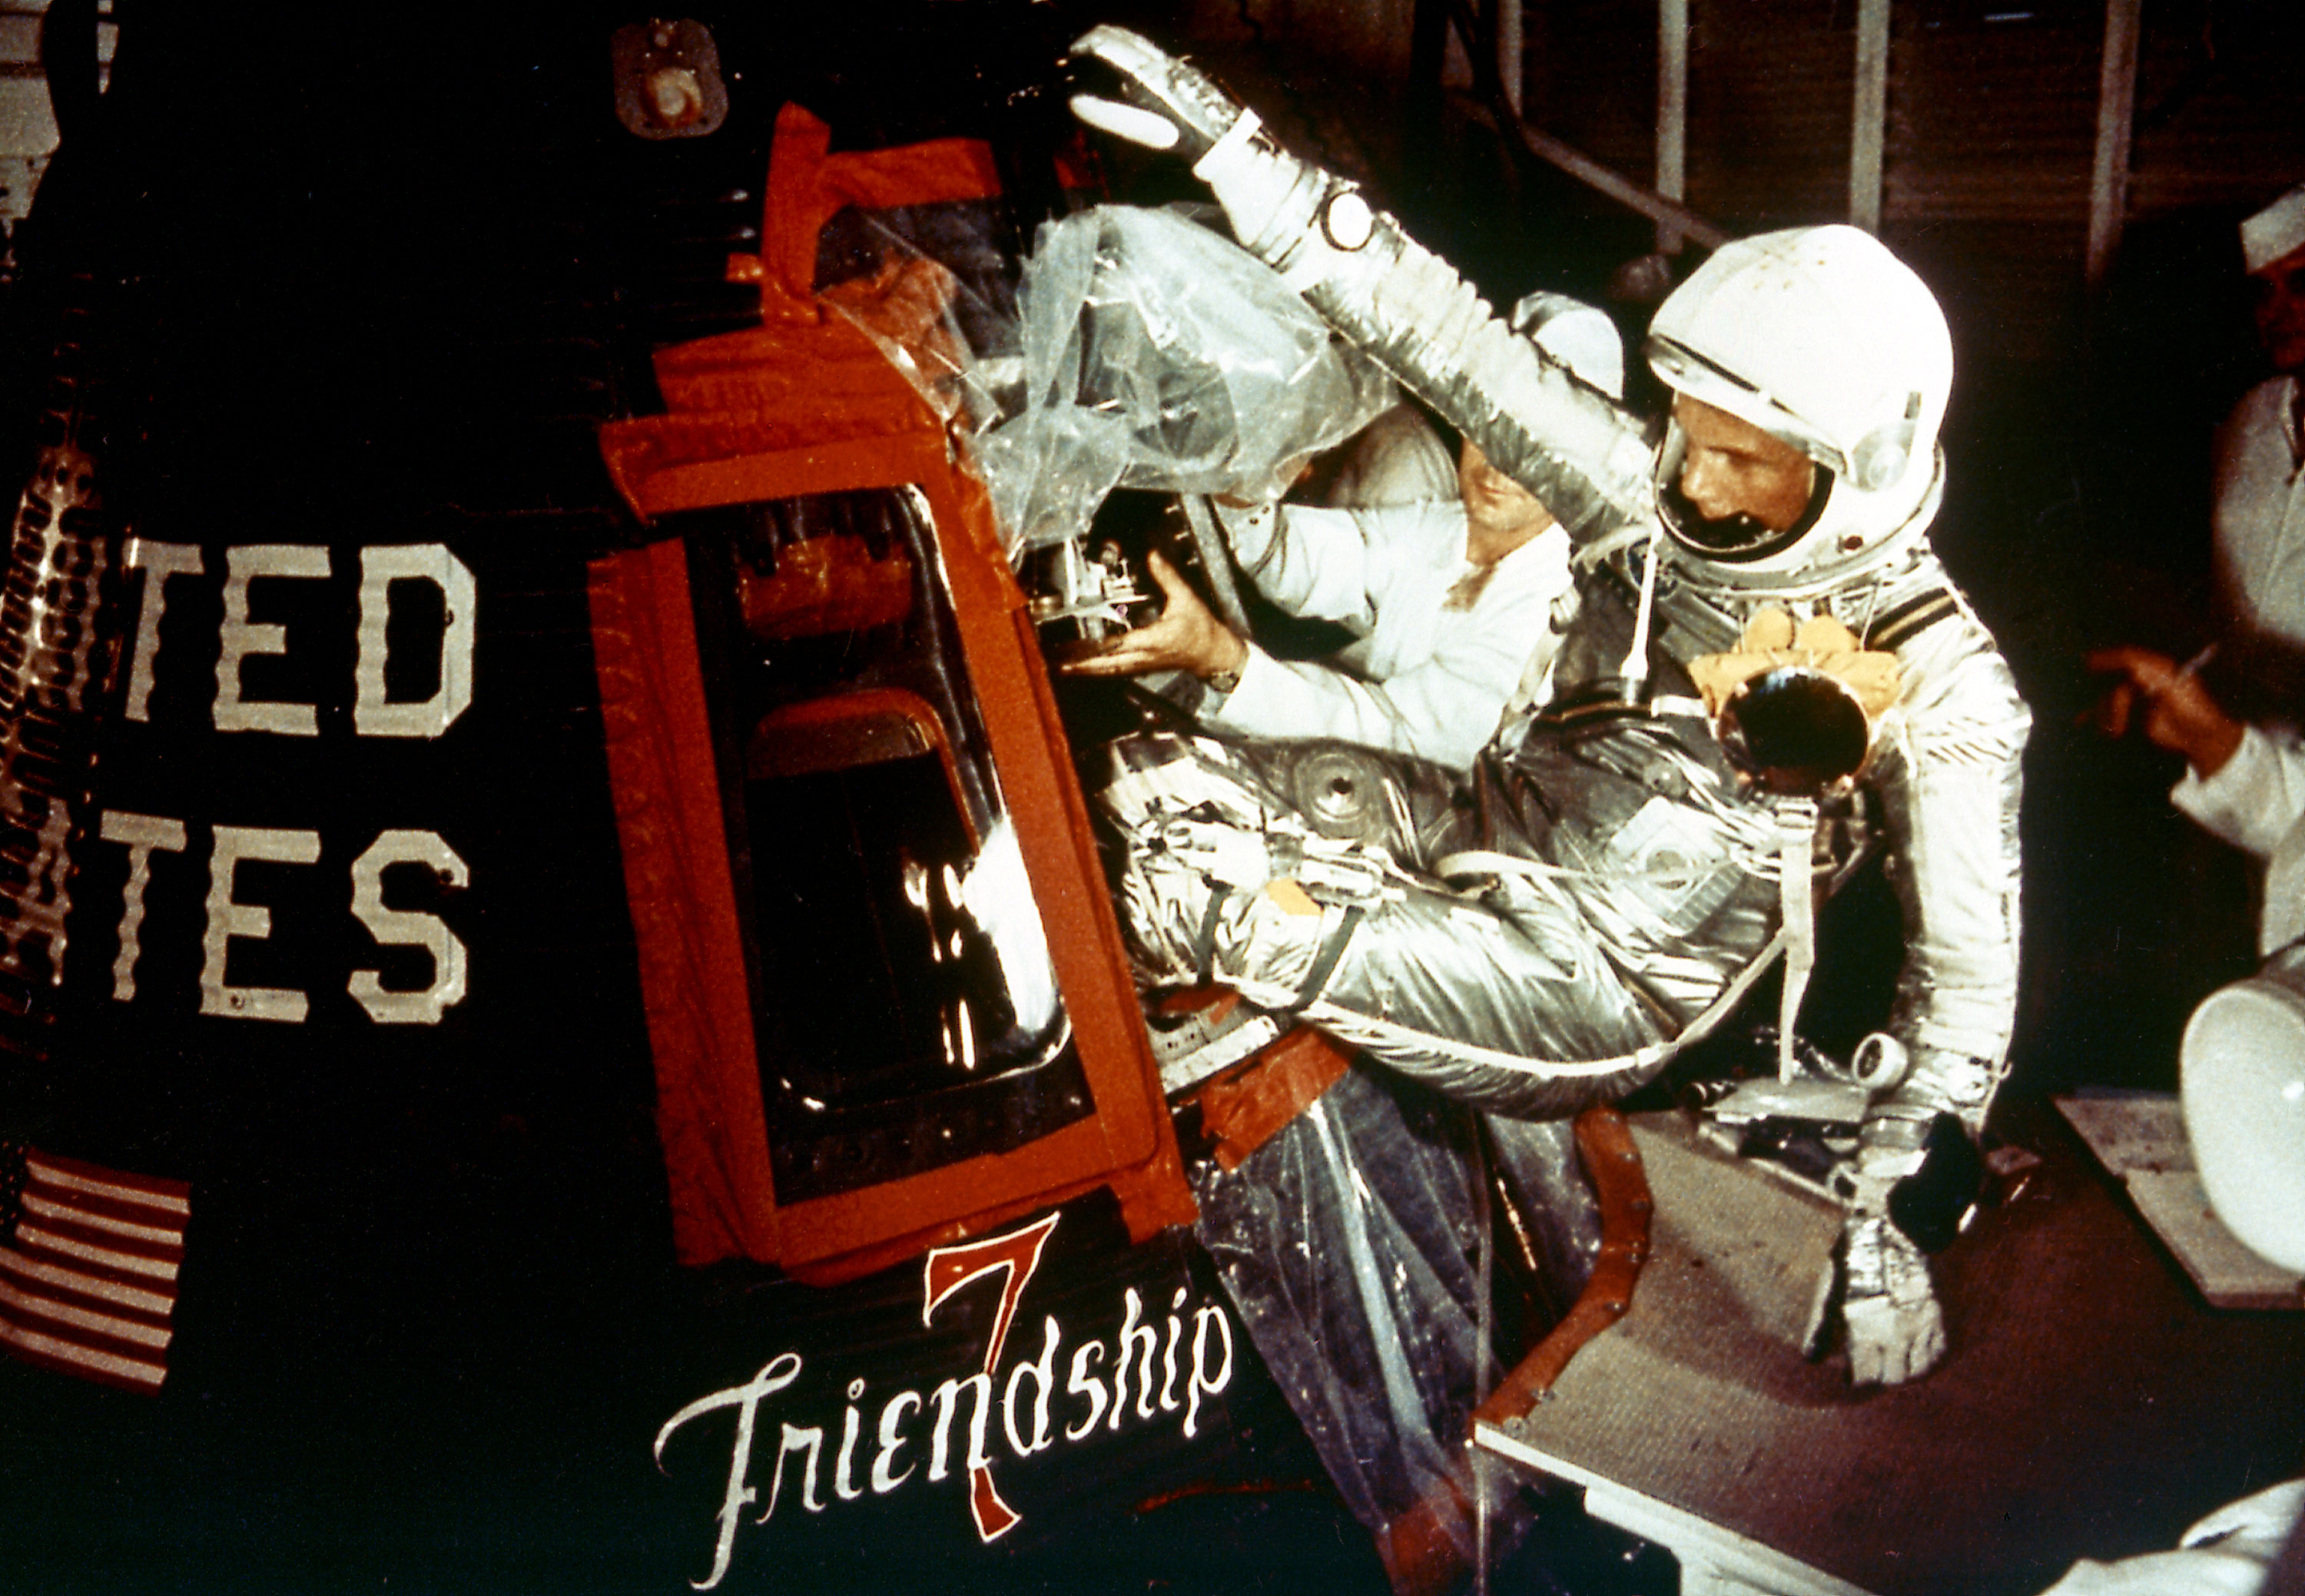 Astronaut John Glenn enters the Mercury spacecraft, Friendship 7, prior to the launch of MA-6 on February 20, 1962 and became the first American who orbited the Earth. The MA-6 mission was the first manned orbital flight boosted by the Mercury-Atlas vehicle, a modified Atlas ICBM (Intercontinental Ballistic Missile), lasted for five hours, and orbited the Earth three times.